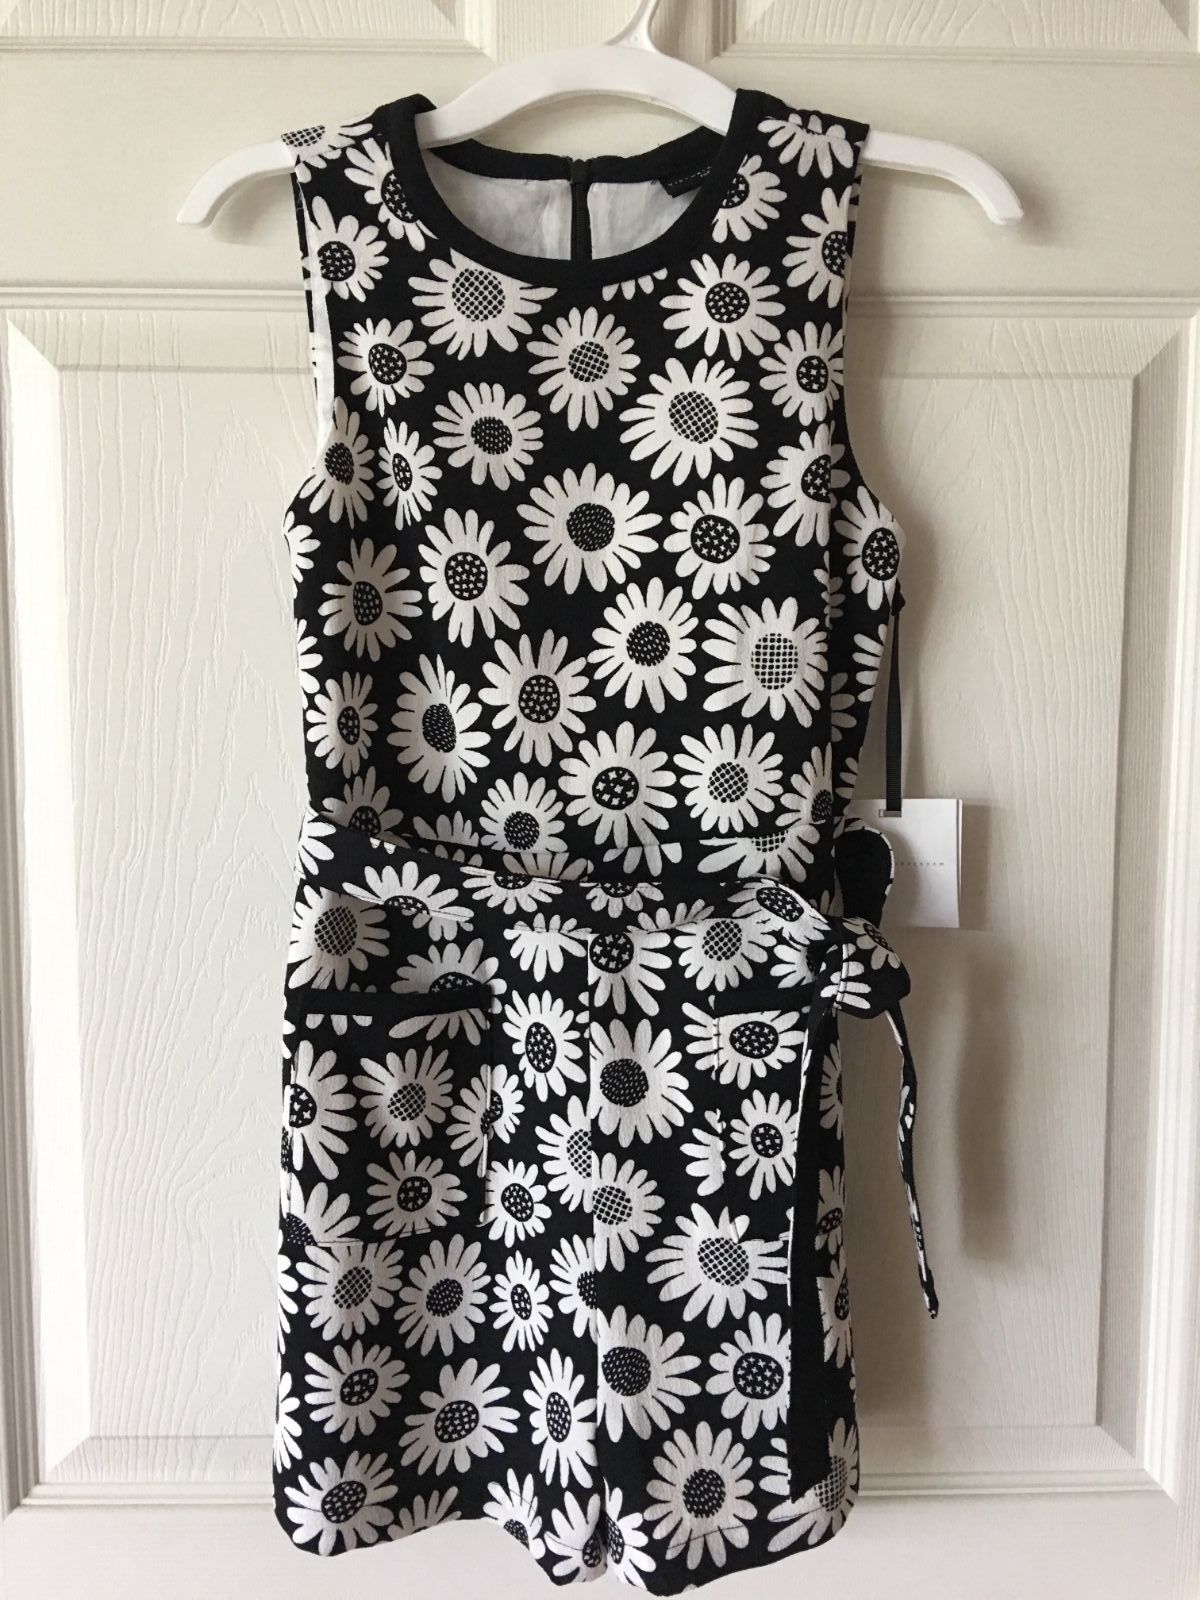 99b4e816bba S l1600. S l1600. Previous. Victoria Beckham for Target Girls Black Mini  Daisy Tie Waist Romper Size M